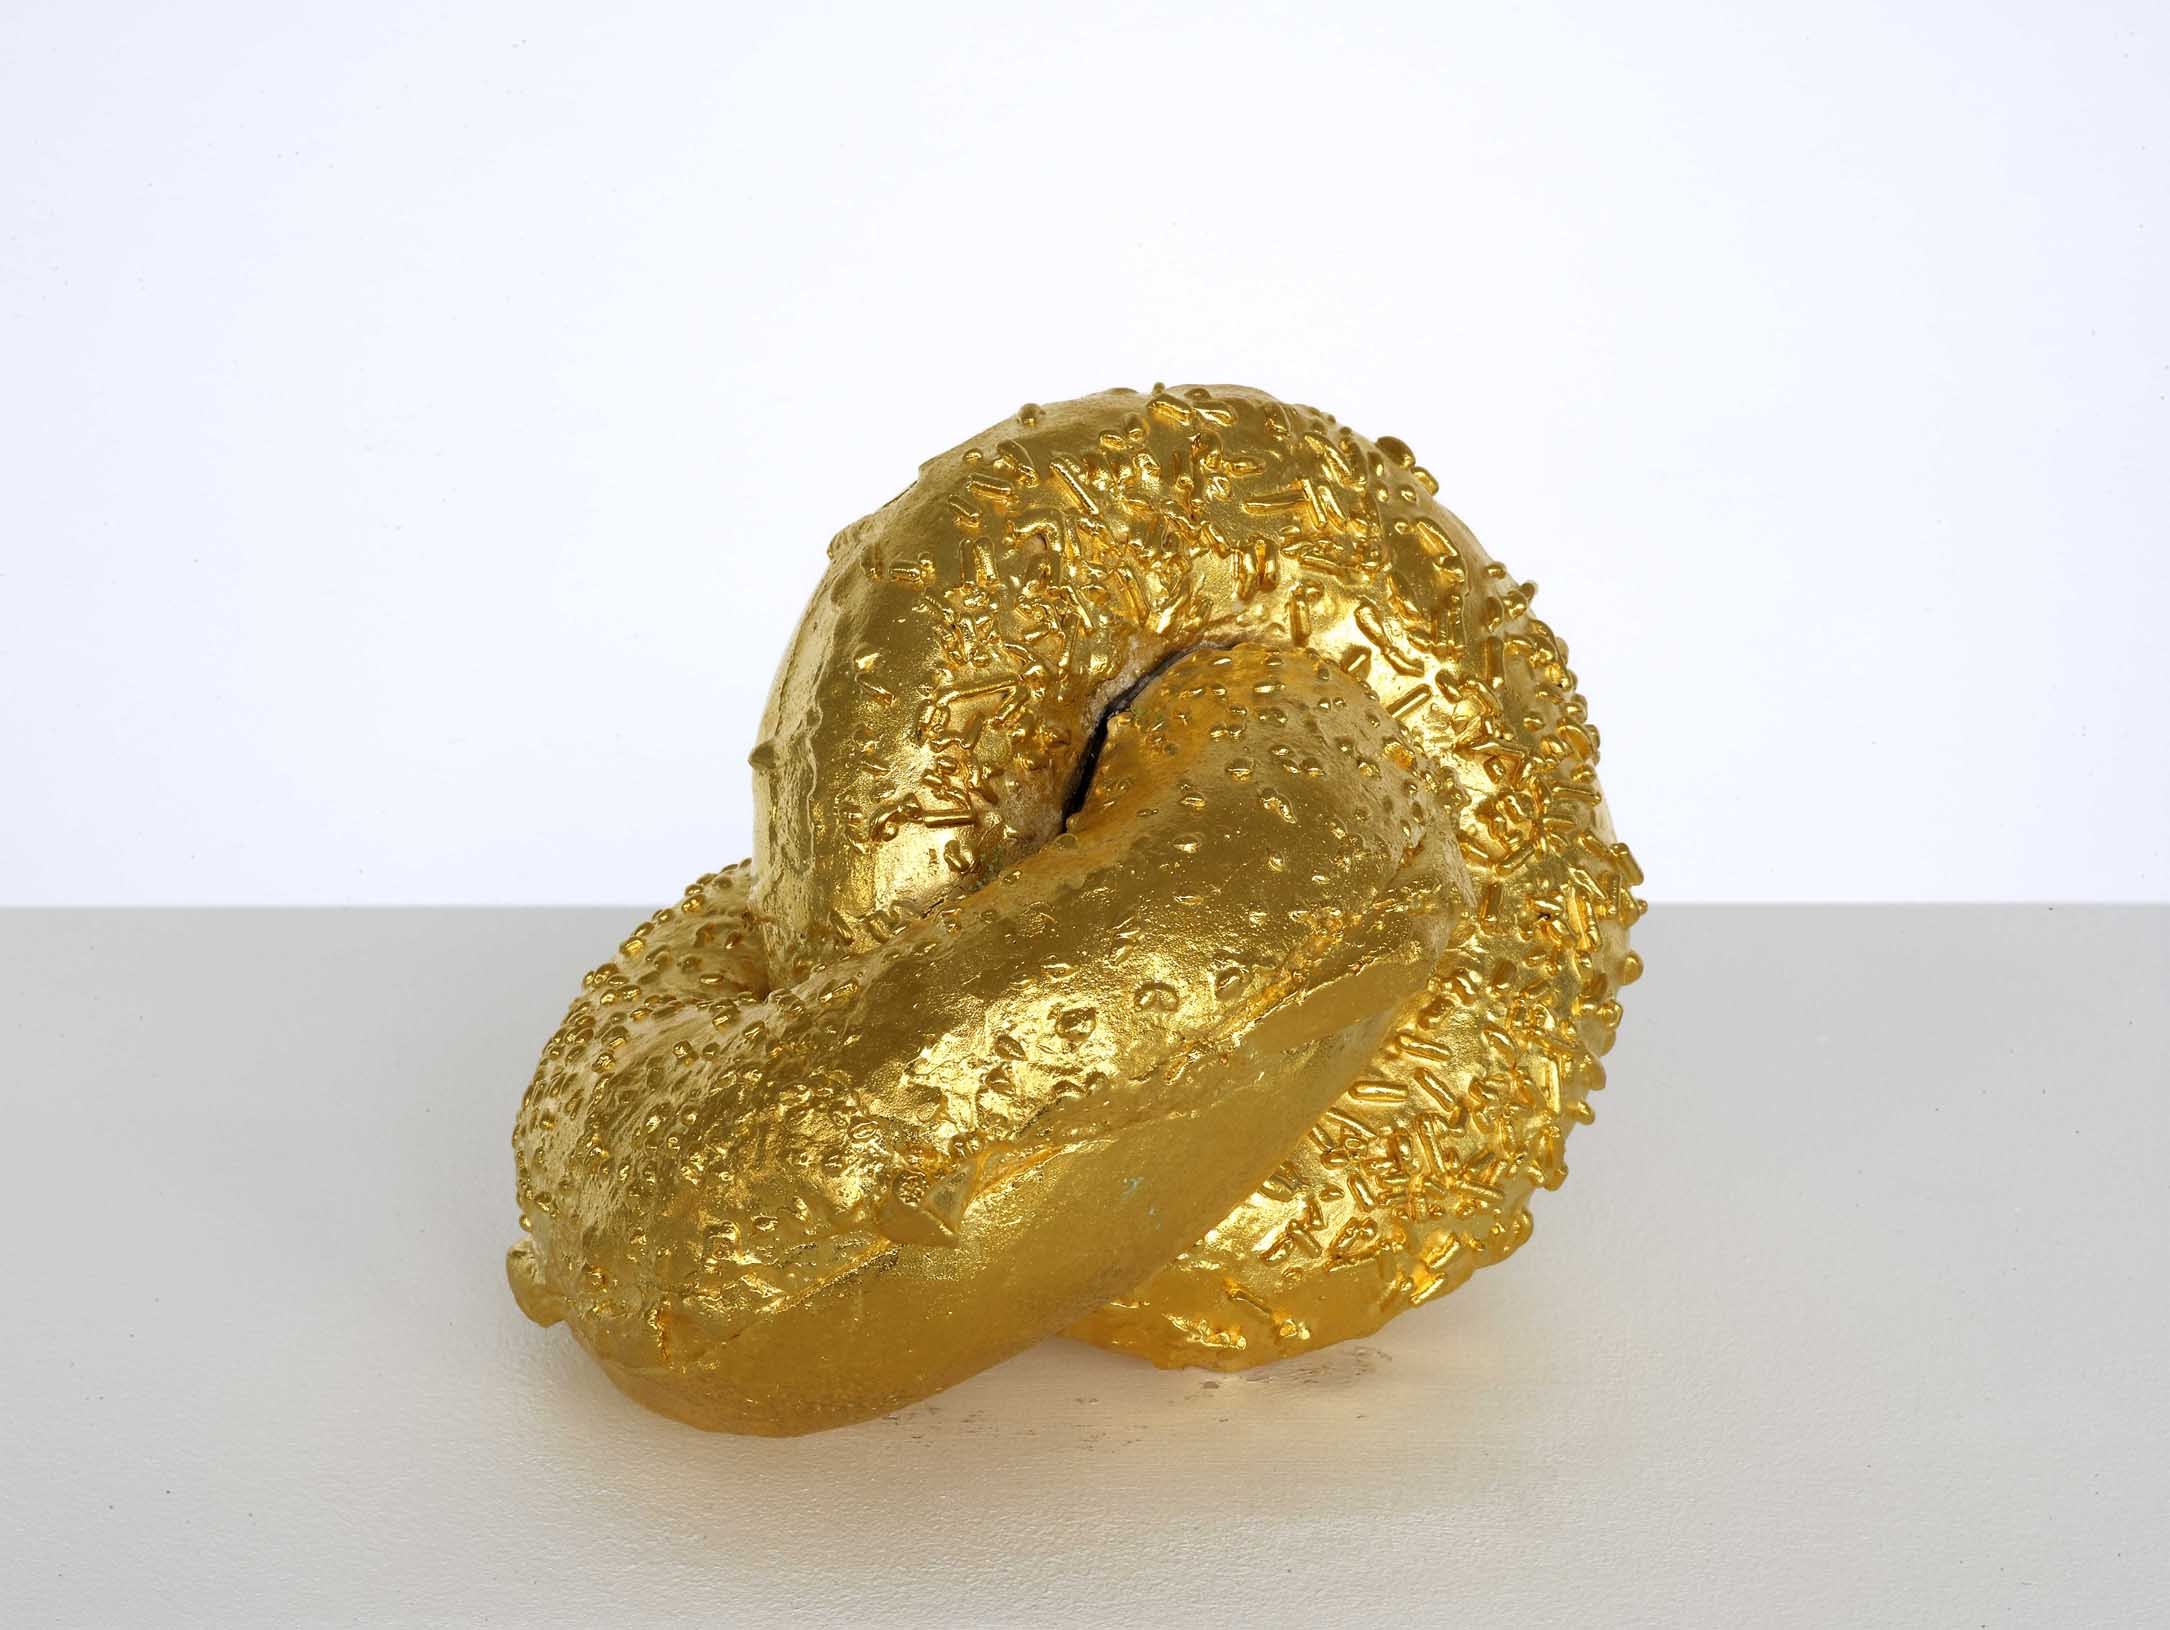 Untitled (Donut, Bagel, Hopf Link) 2010 Gold plated bronze 17.8 x 10.2 x 10.2 cm / 7 x 4 x 4 in